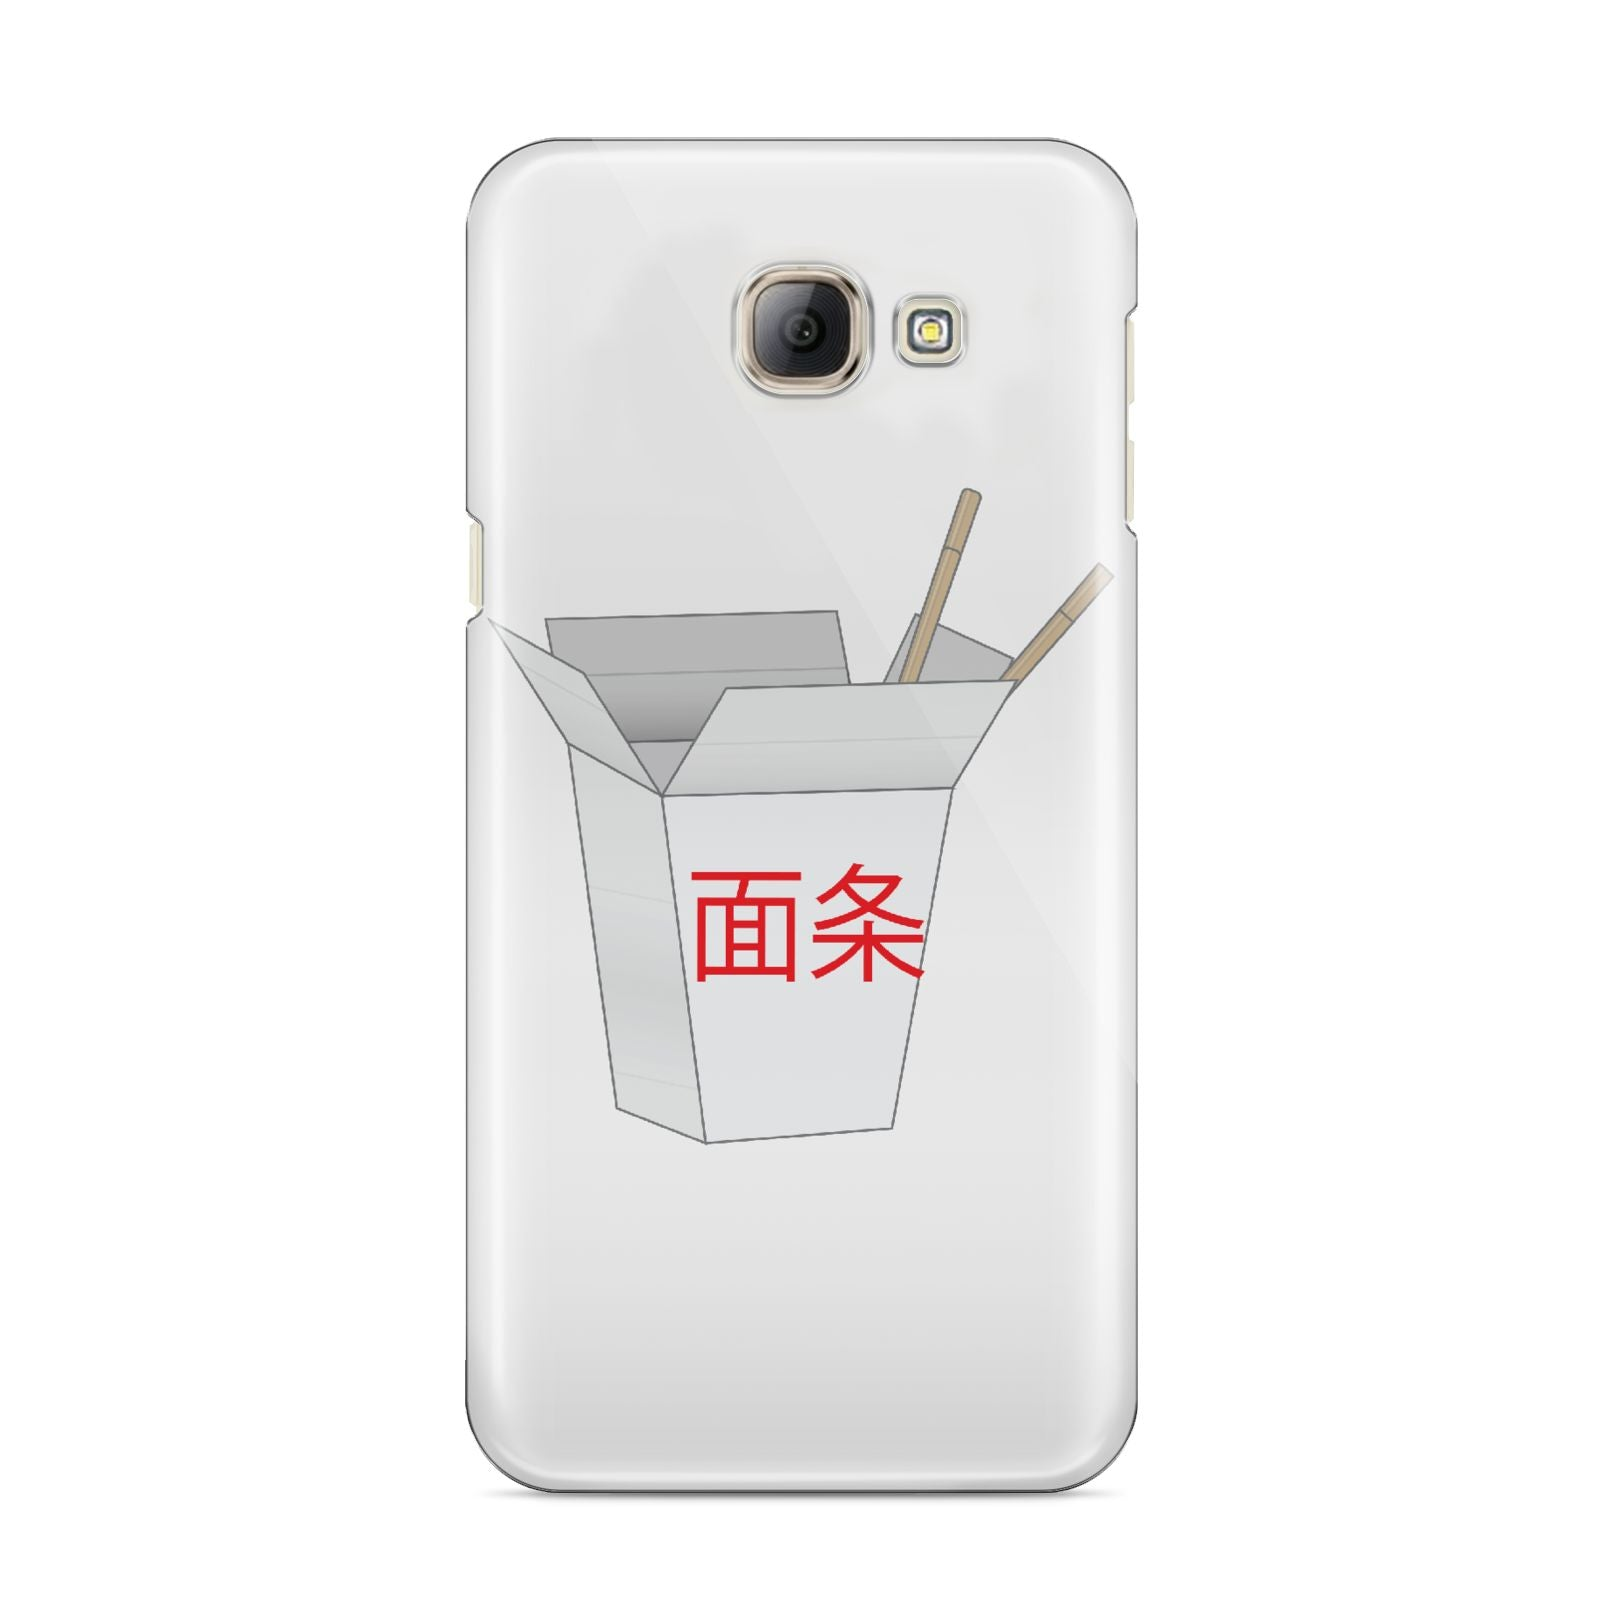 Chinese Takeaway Box Samsung Galaxy A8 2016 Case